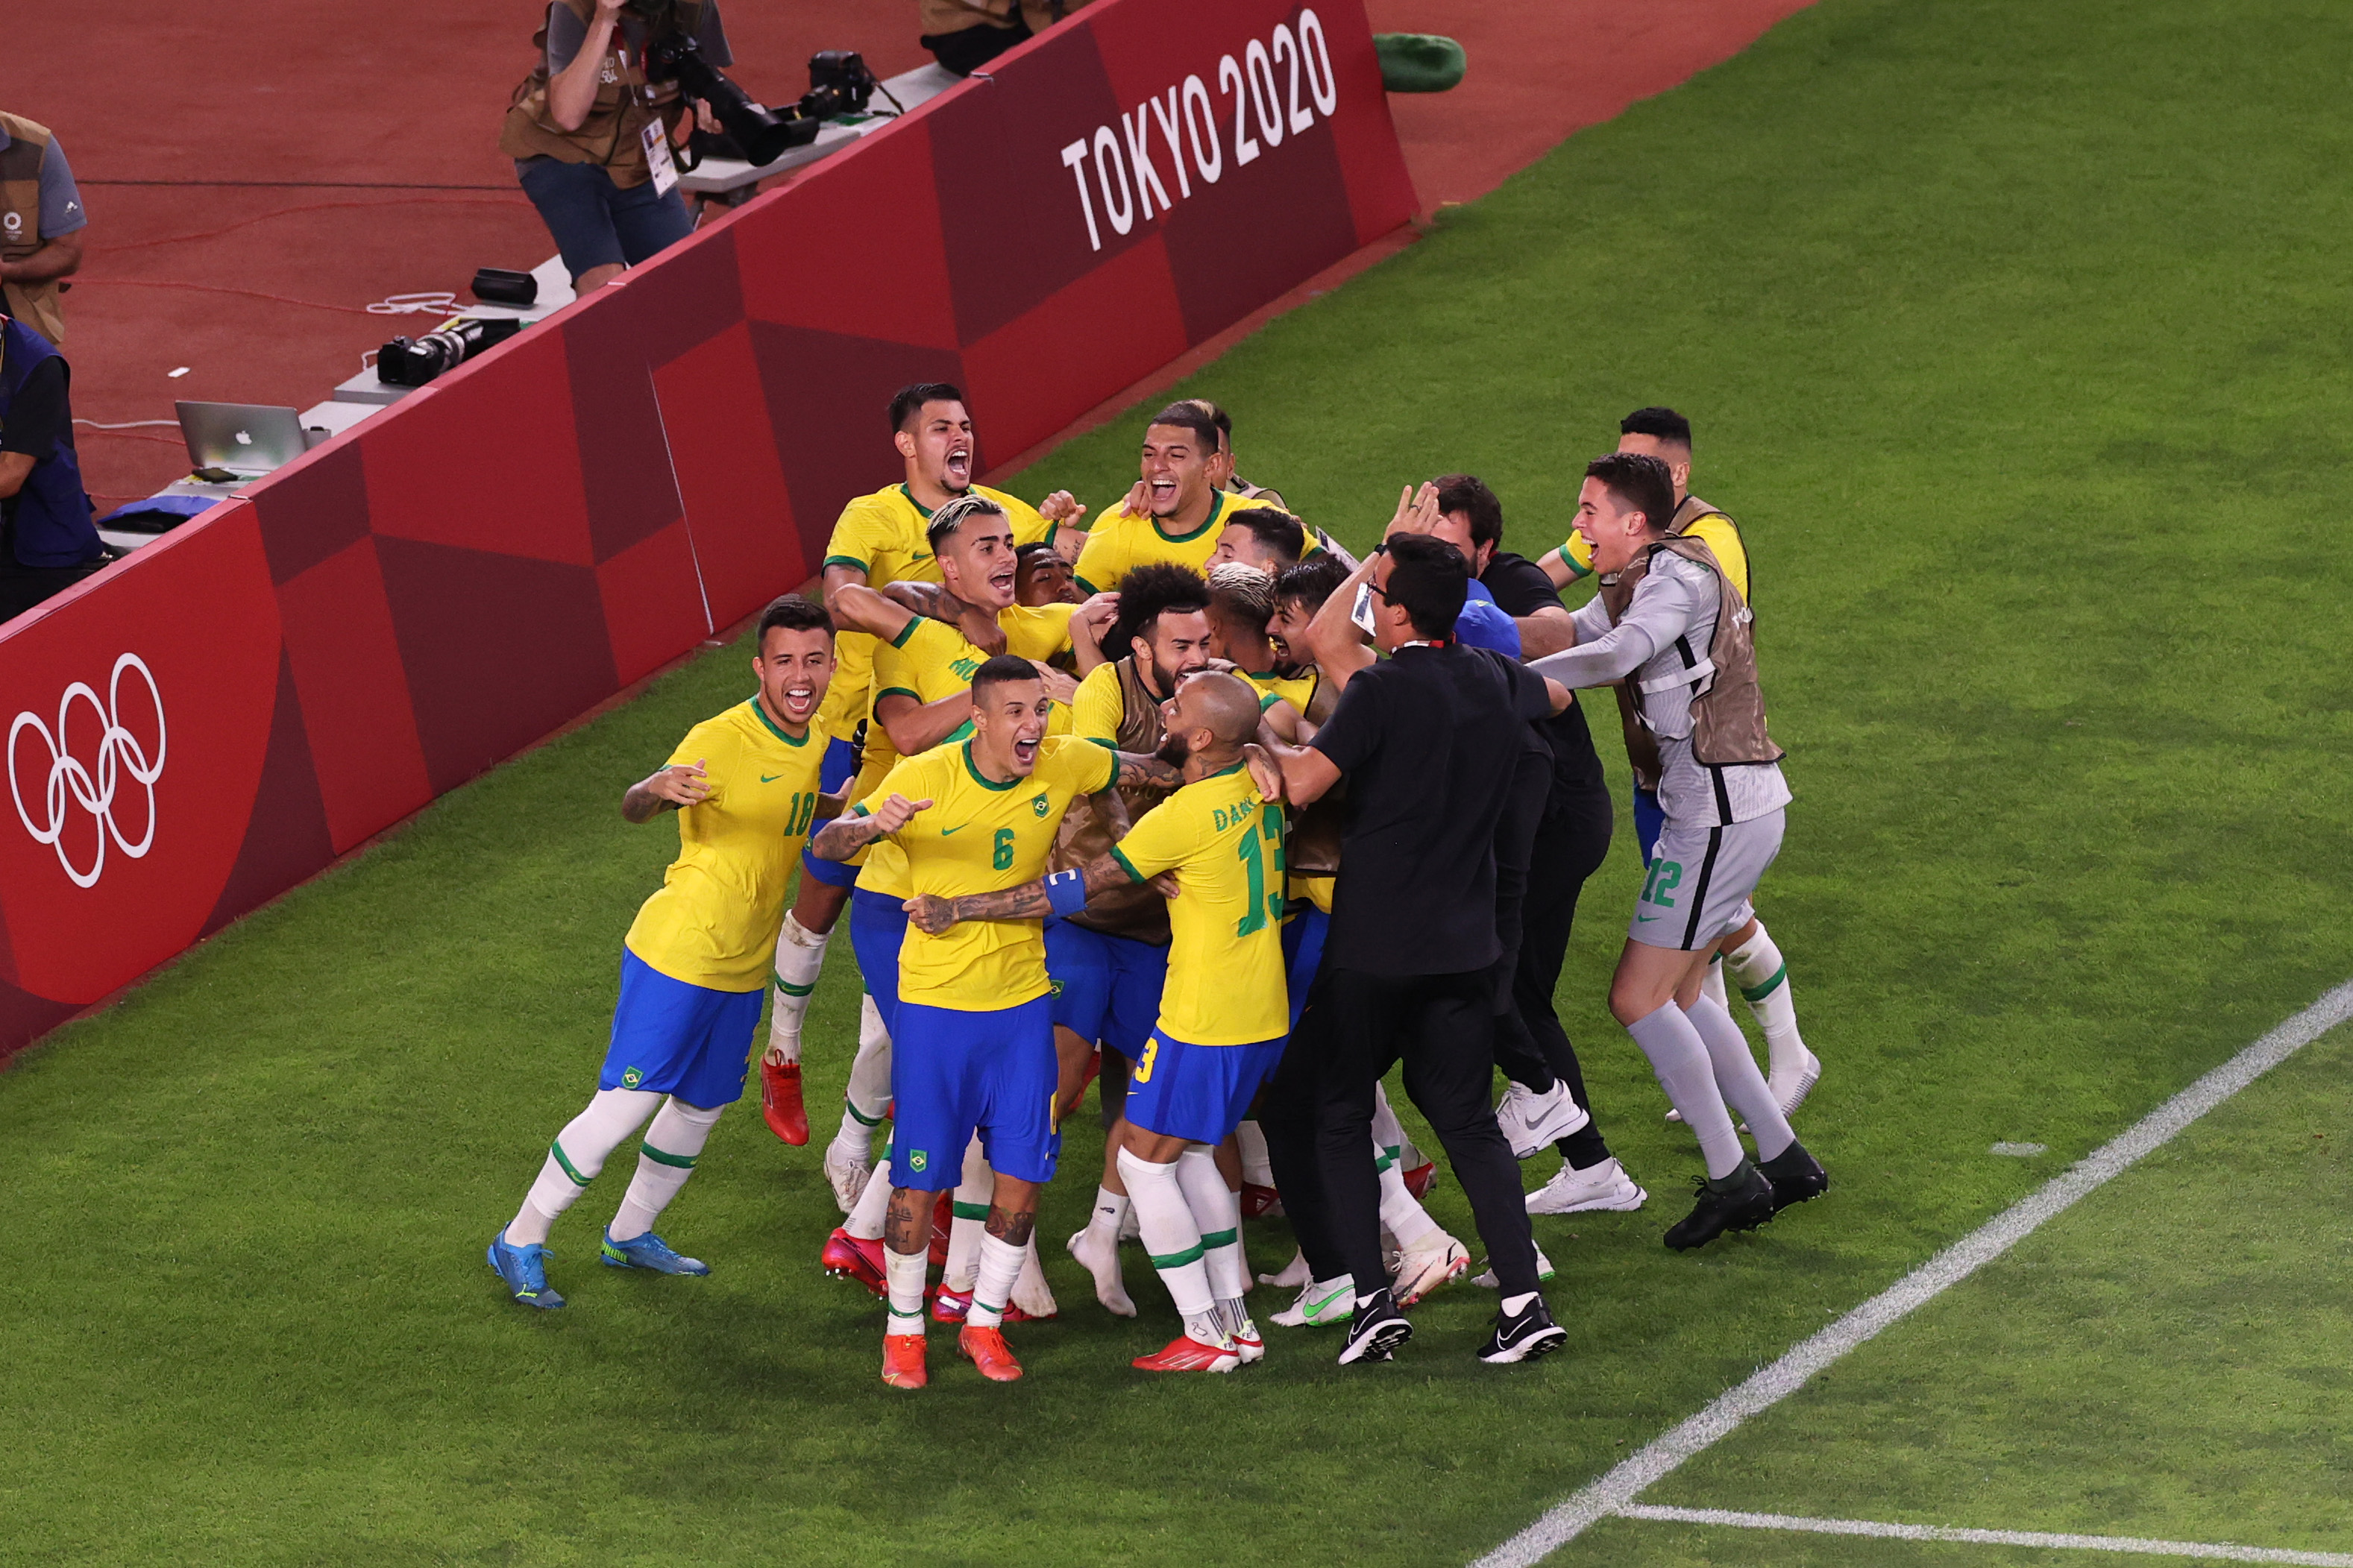 Reinier #19 of Team Brazil (obscured) celebrates with team mates after scoring their side's winning penalty during the penalty shoot out during the Men's Football Semi-final match between Mexico and Brazil on day eleven of the Tokyo 2020 Olympic Games at Kashima Stadium on August 03, 2021 in Kashima, Ibaraki, Japan.